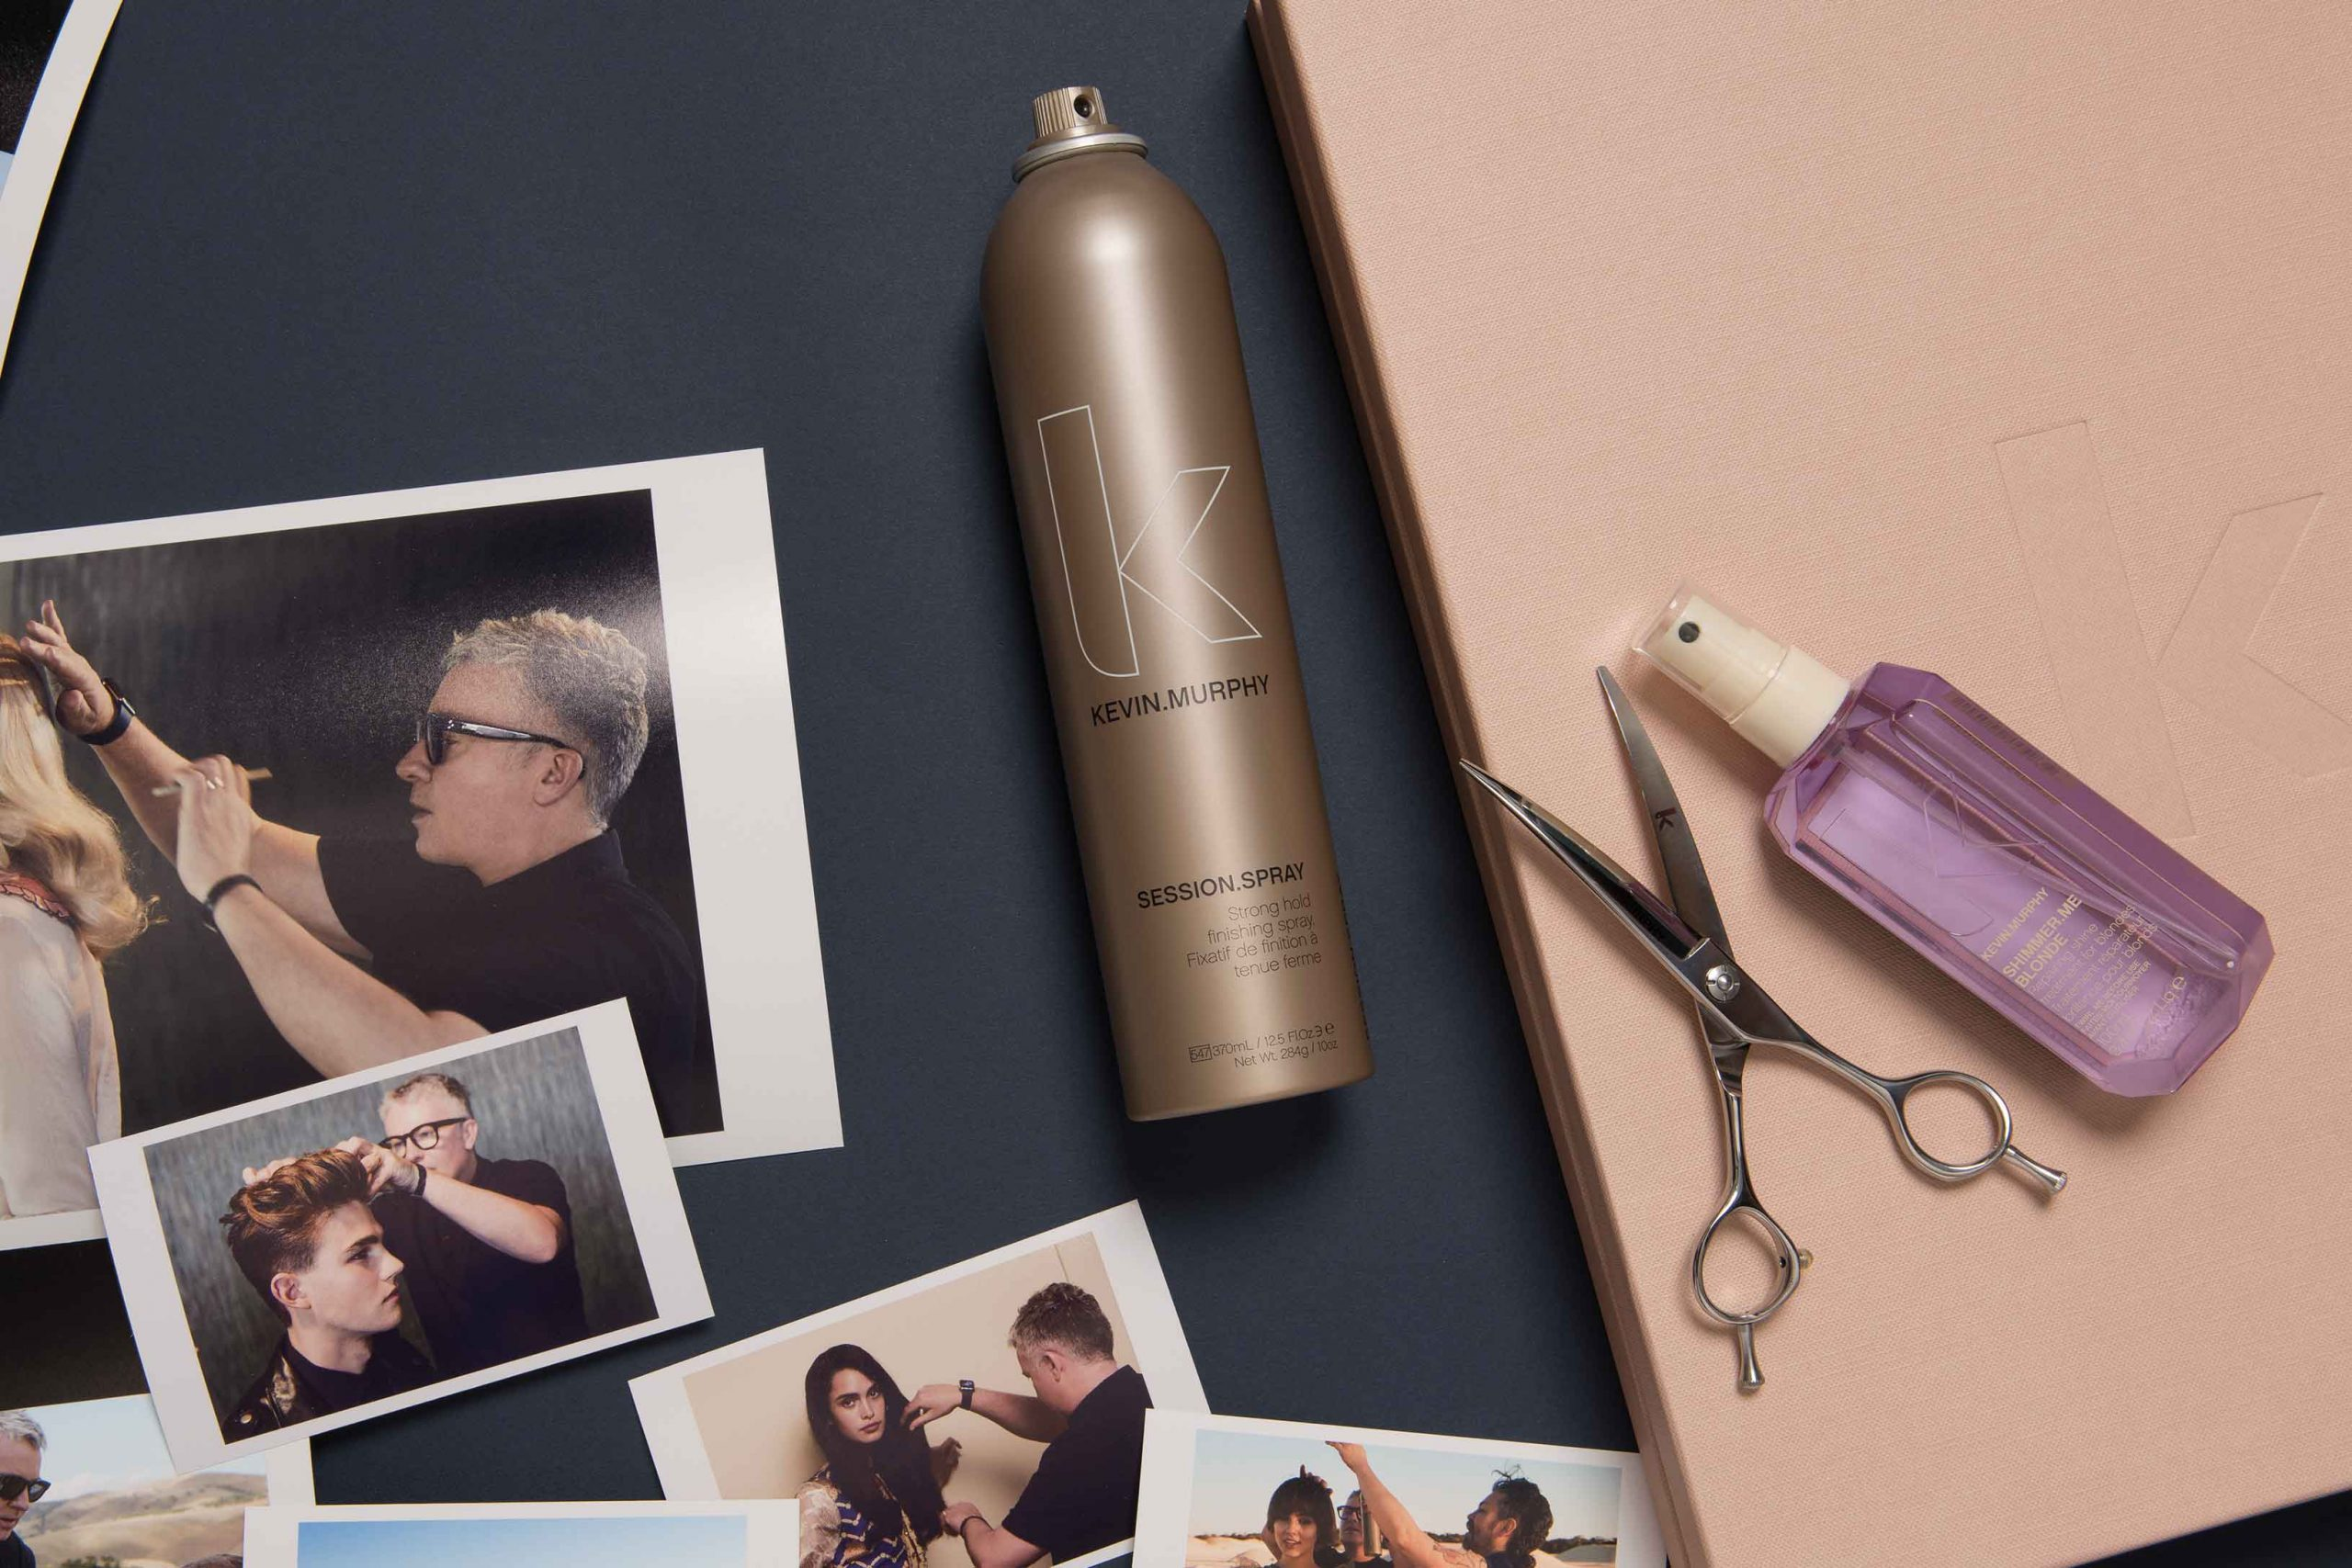 Session Stylist Kevin Murphy